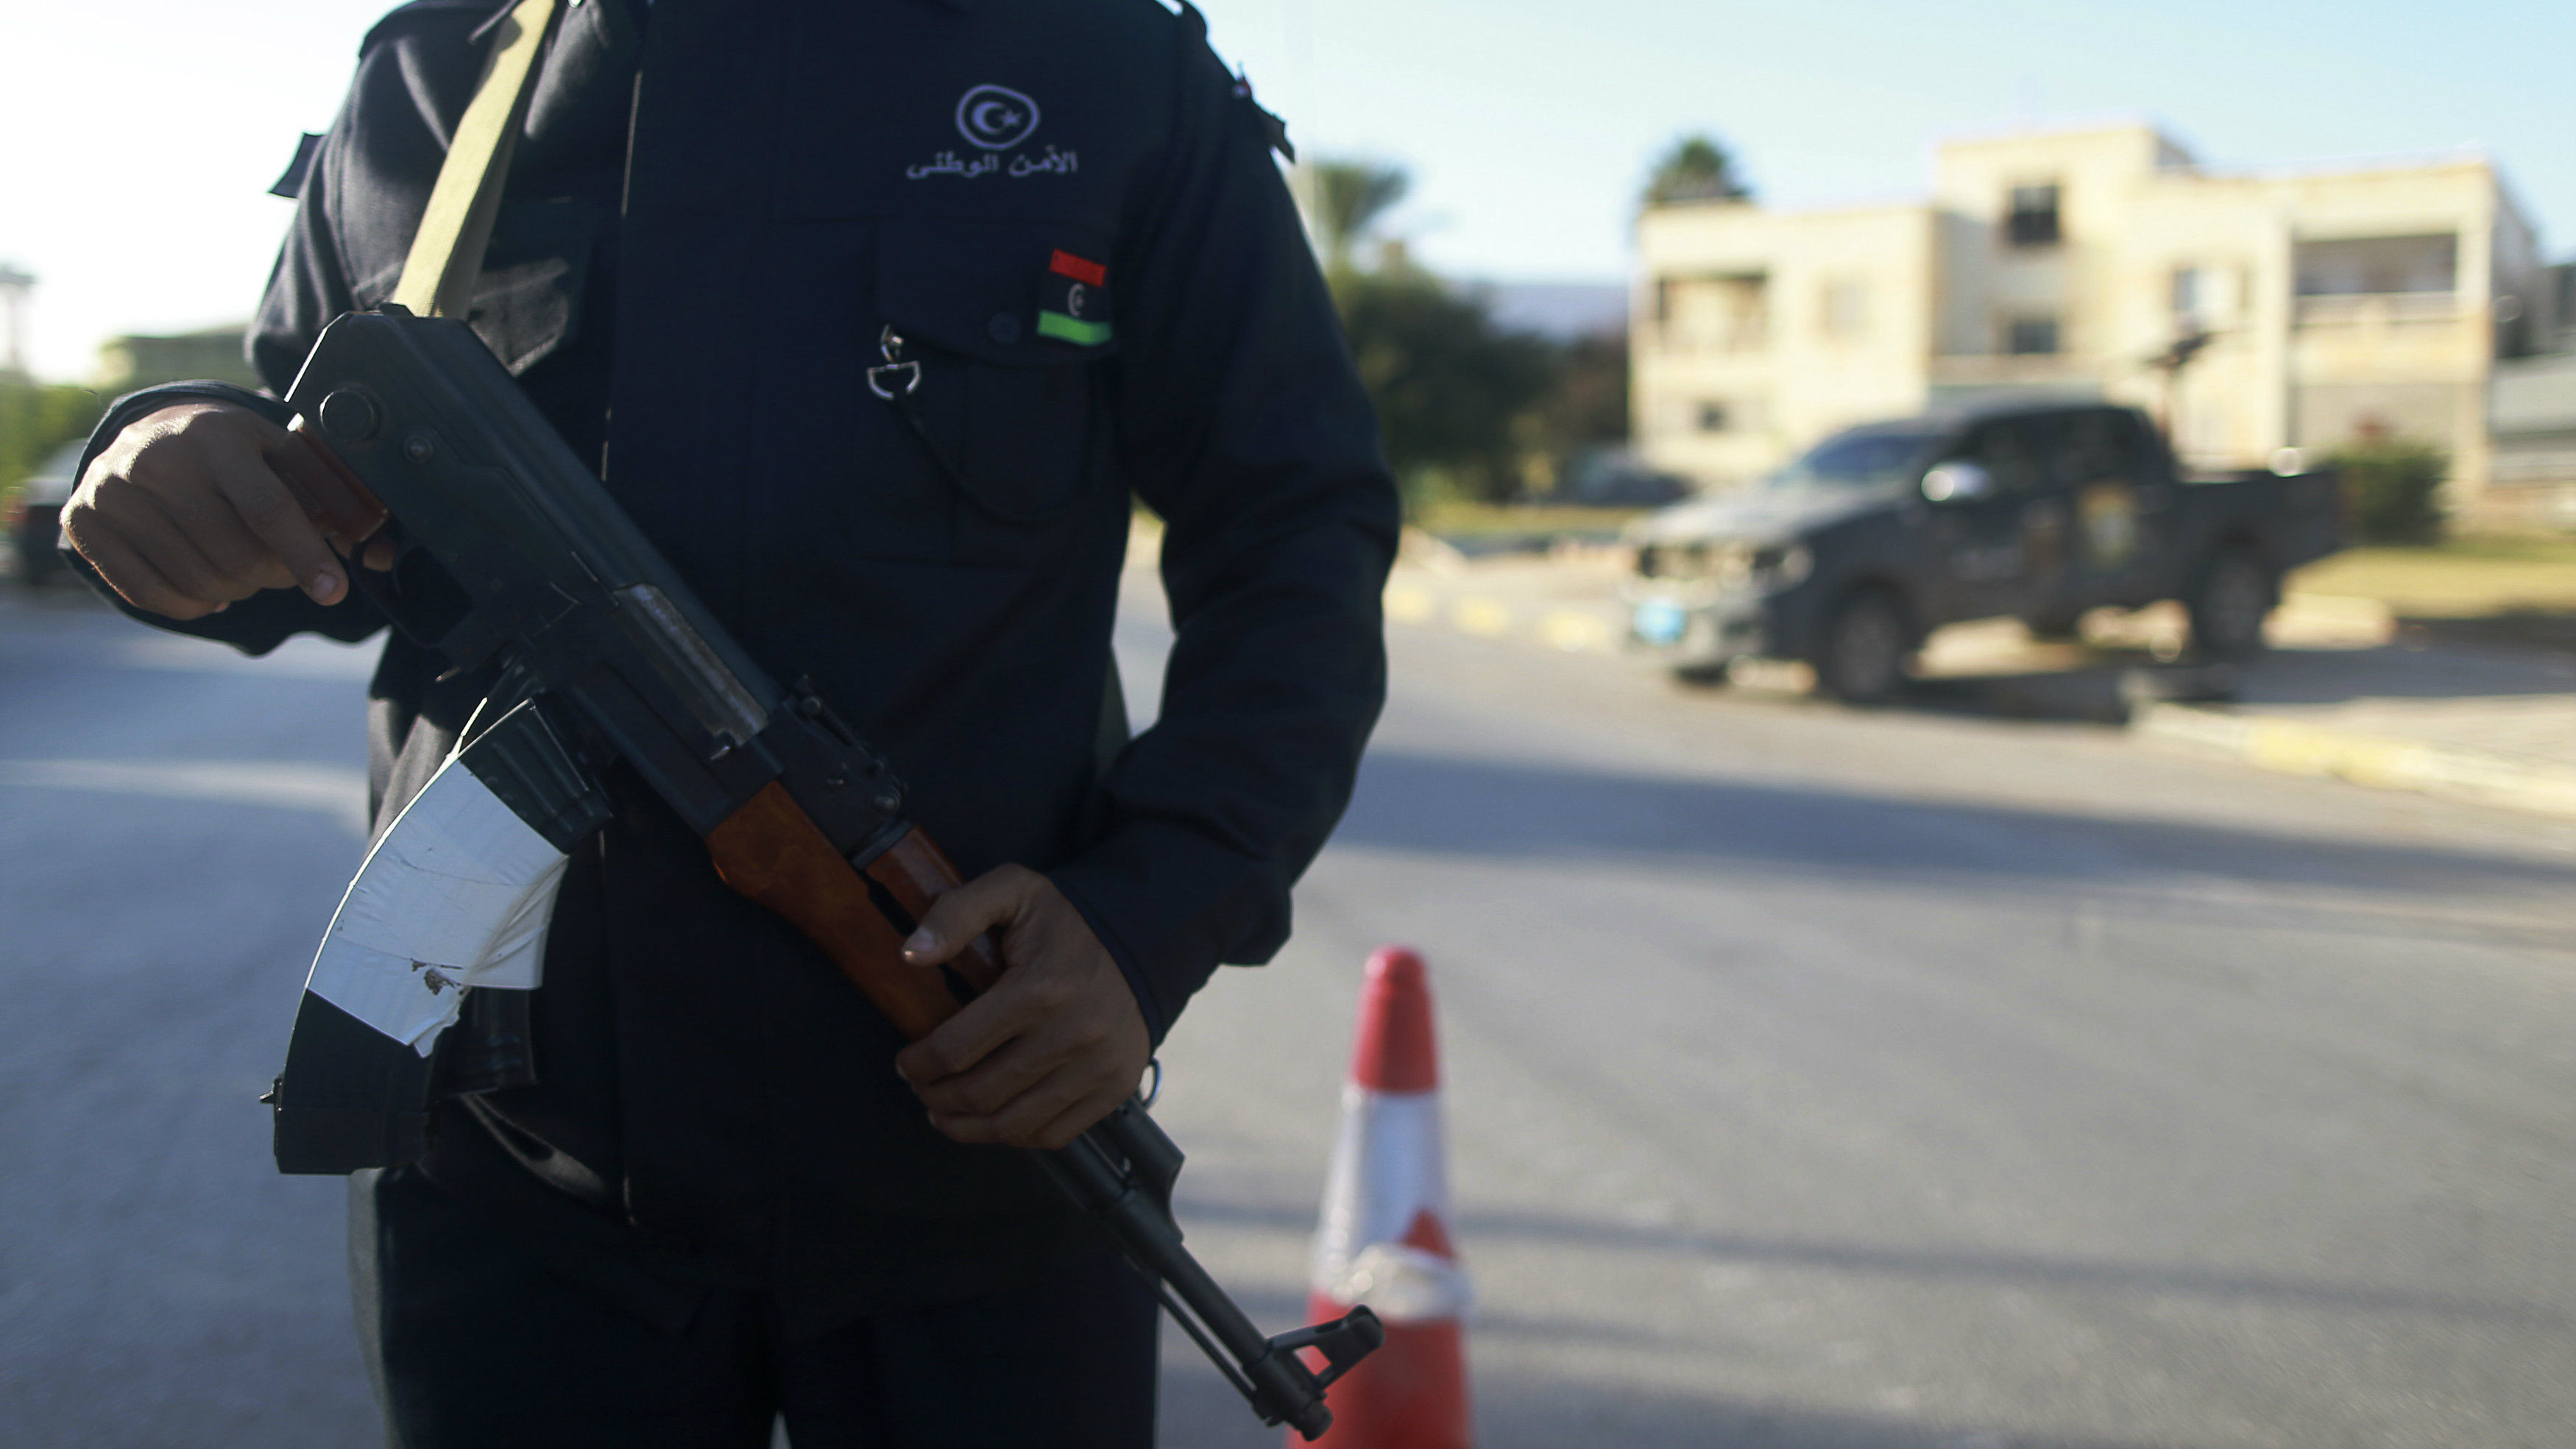 A security officer stands with his weapon on a road leading to a police station in Benghazi December 4, 2014. Police stations, prisons and the local security headquarters have reopened in Libya's eastern city of Benghazi for the first time in over a year, officials said, after pro-government forces seized back part of the port city.